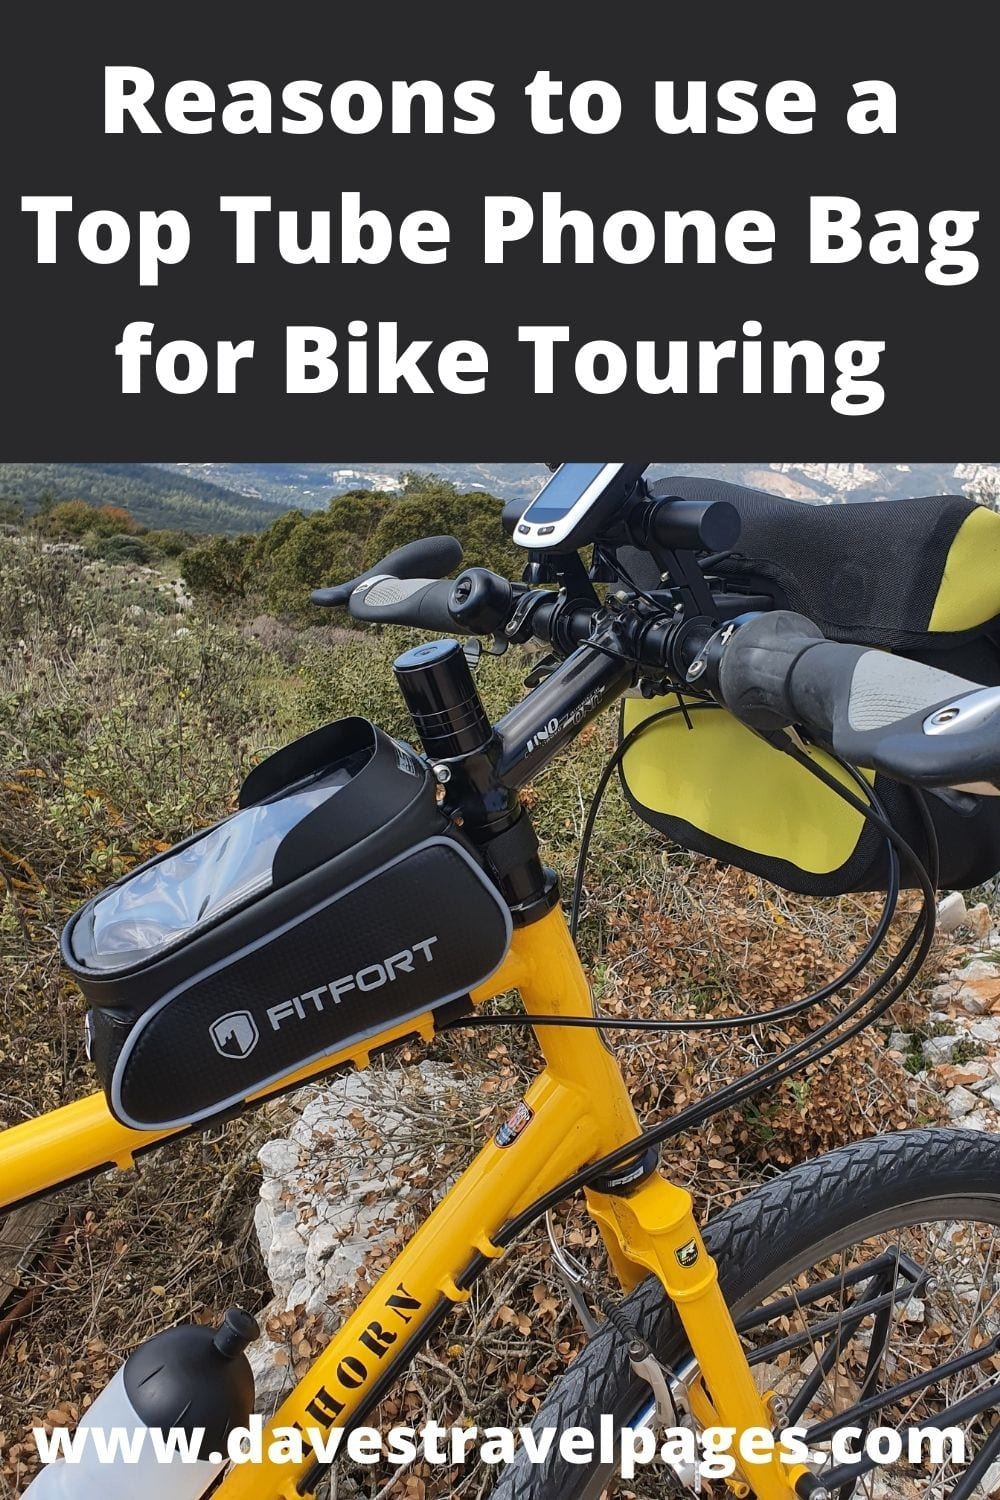 Reasons to use a Top Tube Bike Bag for Touring